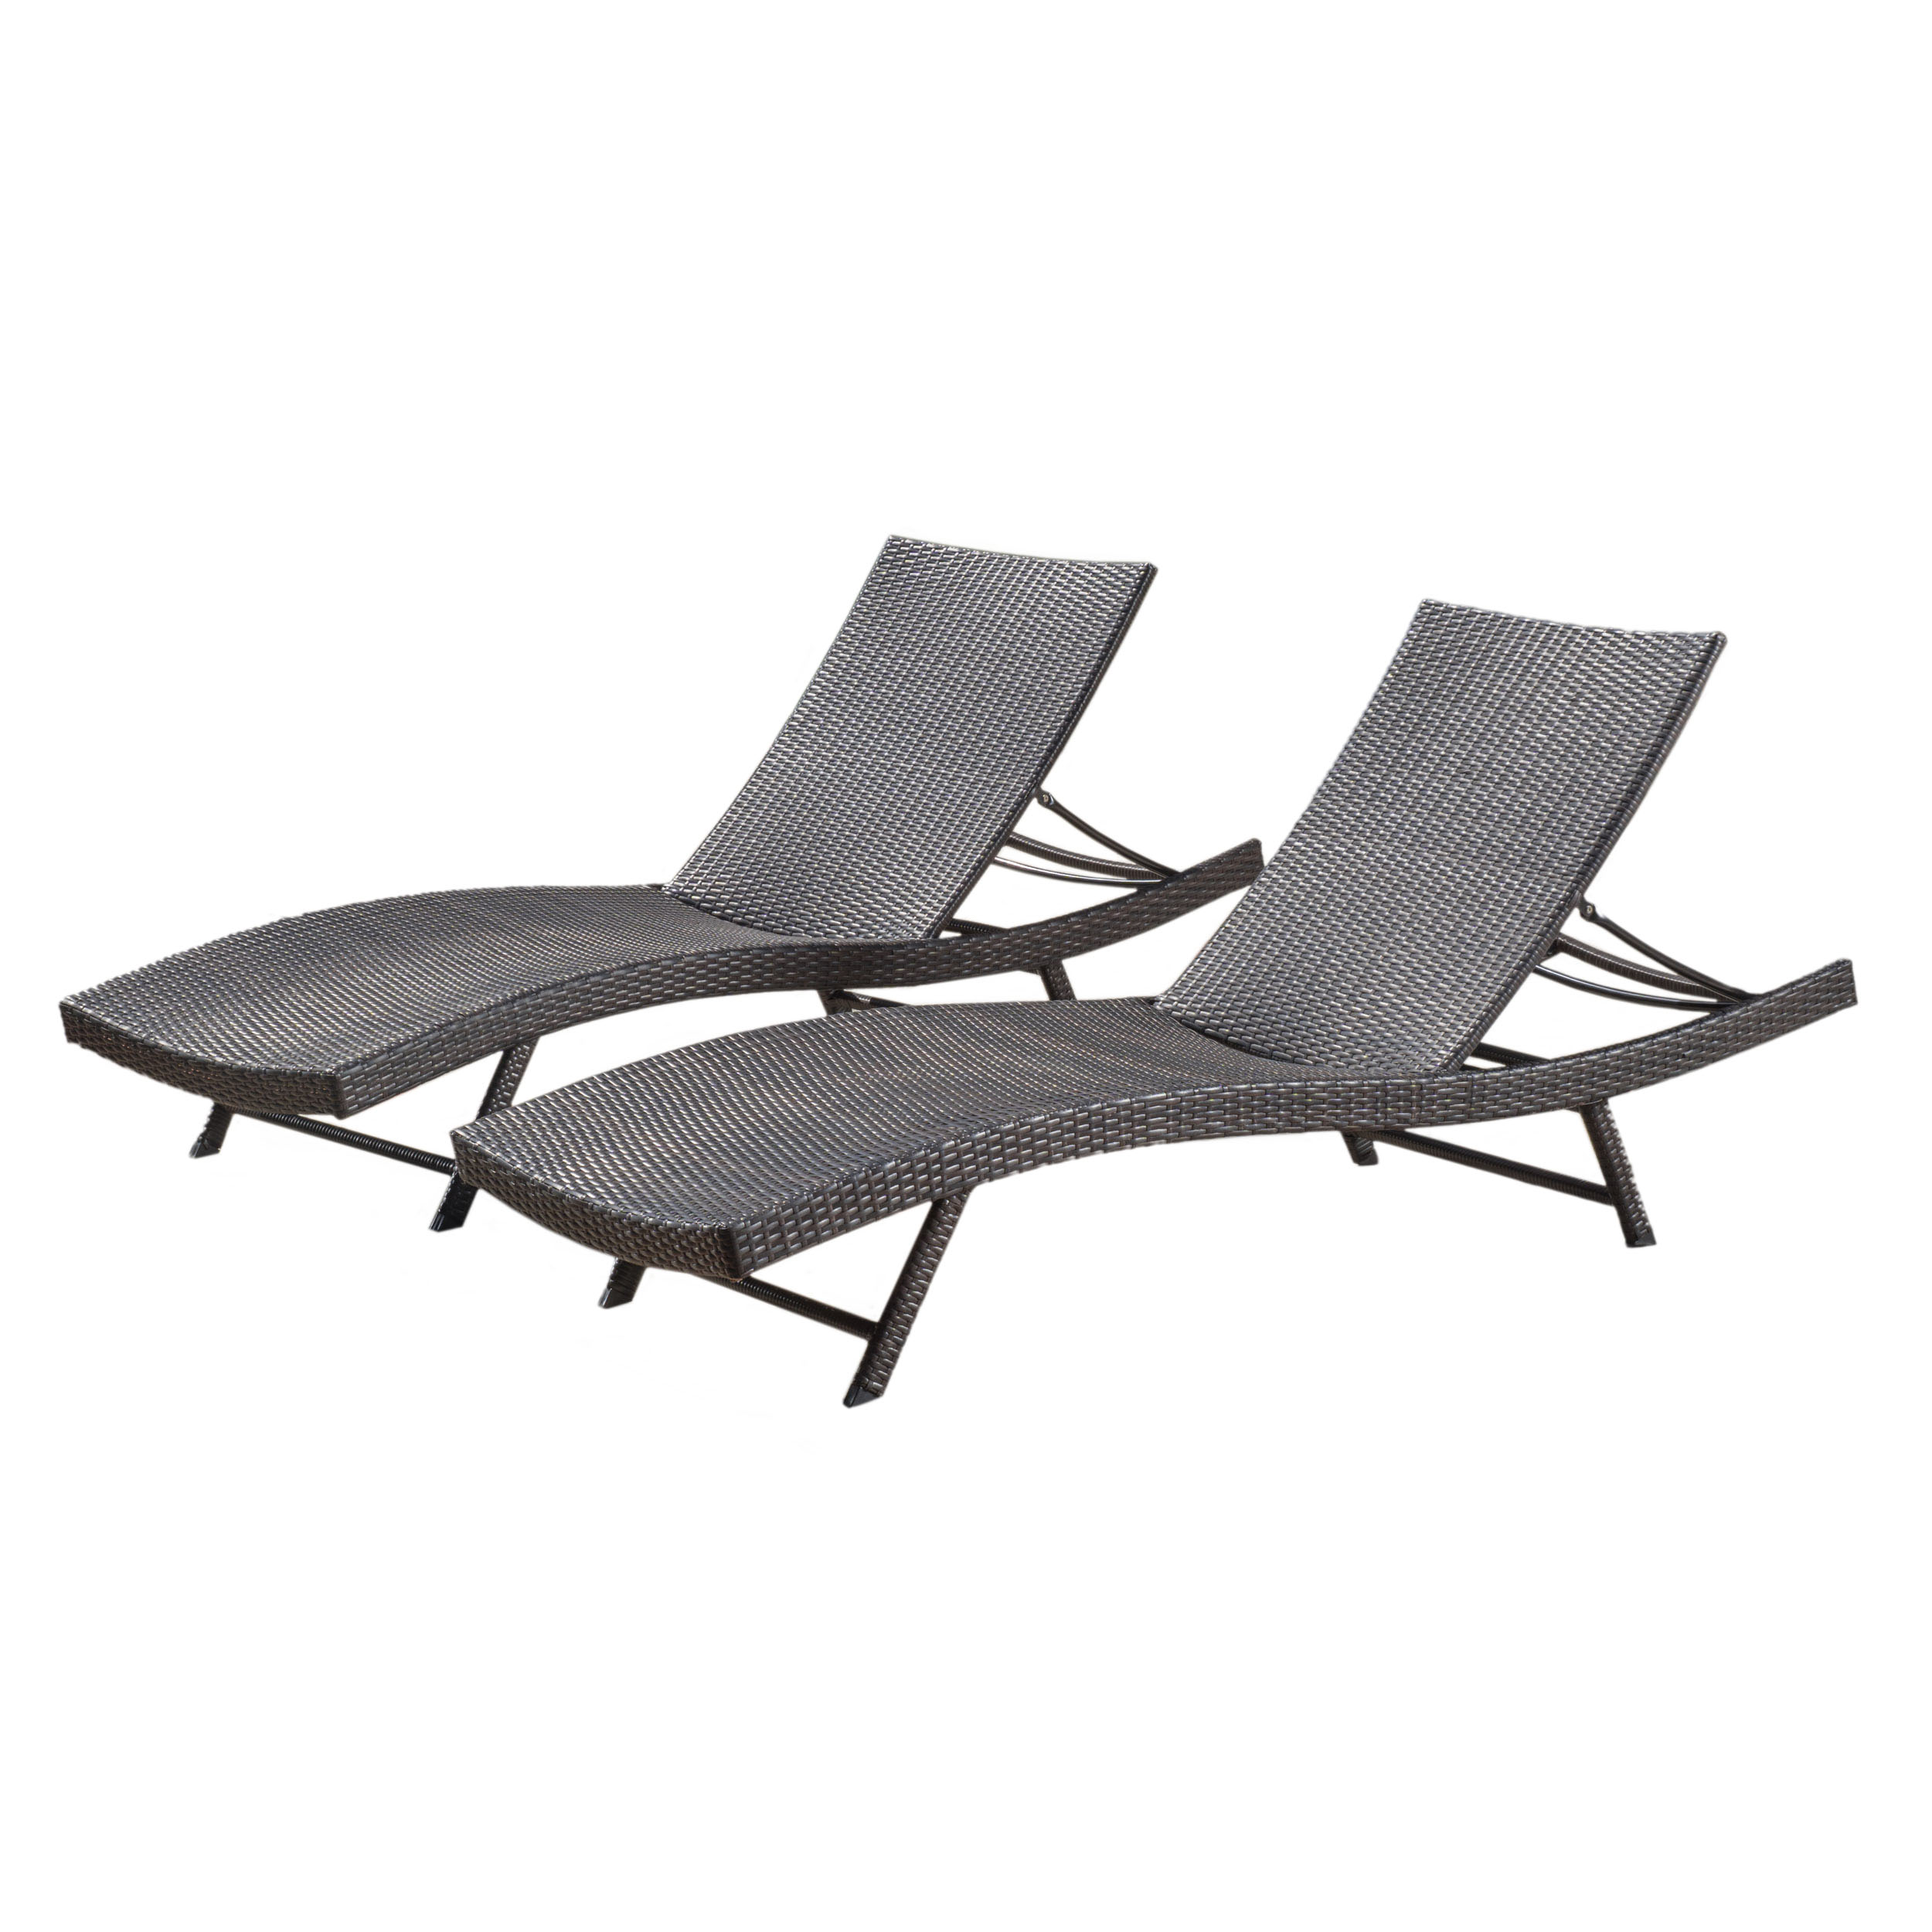 Noble house brown chaise lounge set of 2 by noble house for Brown chaise longue